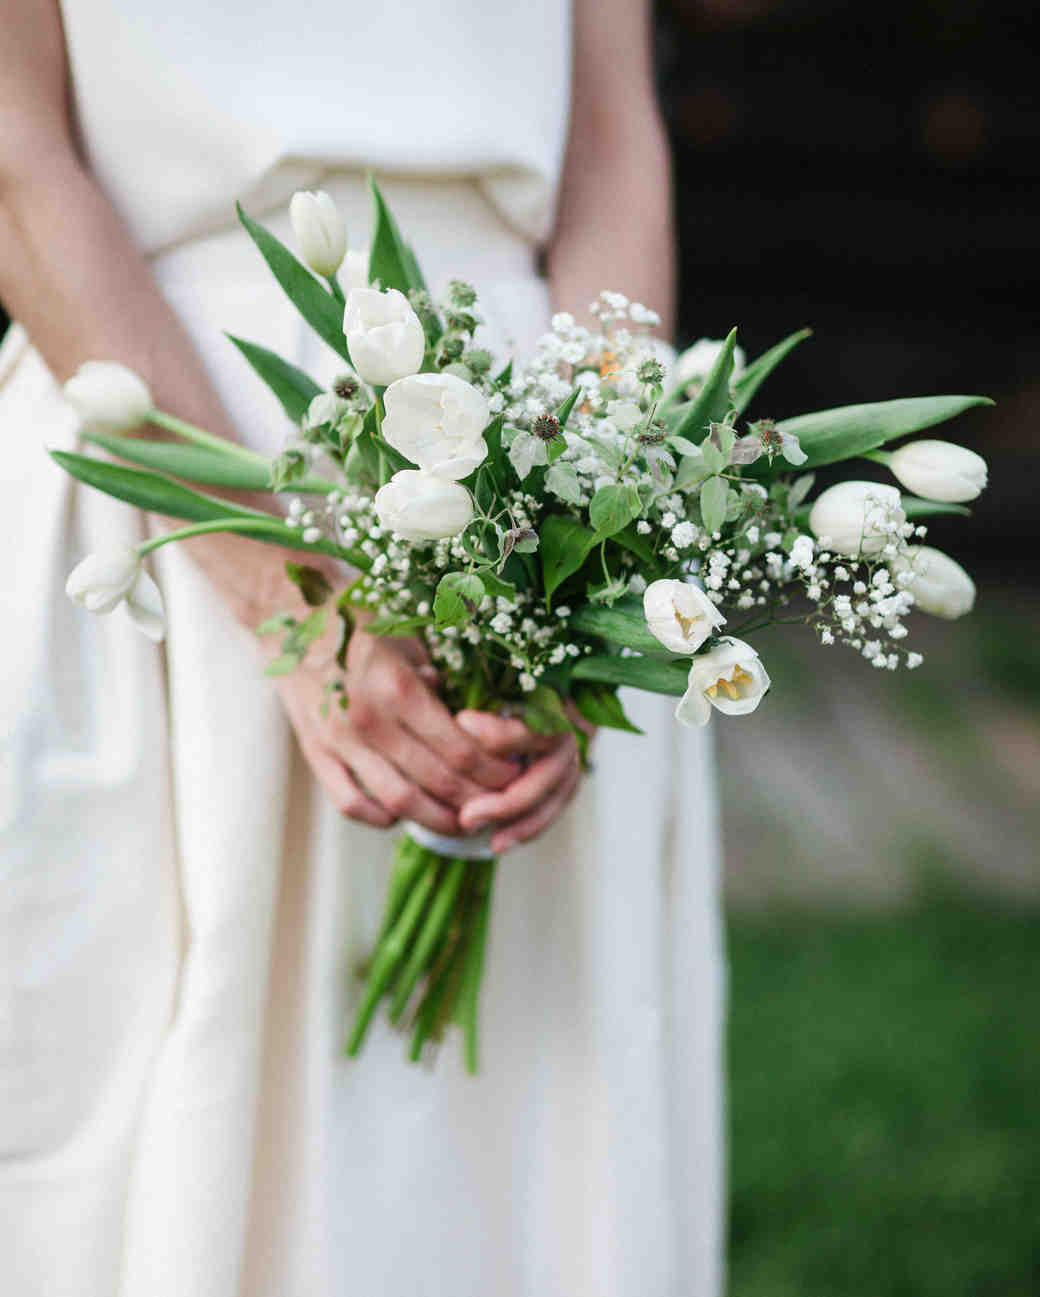 Ideas For Wedding Flowers: 21 Ideas For Your Tulip Wedding Bouquet